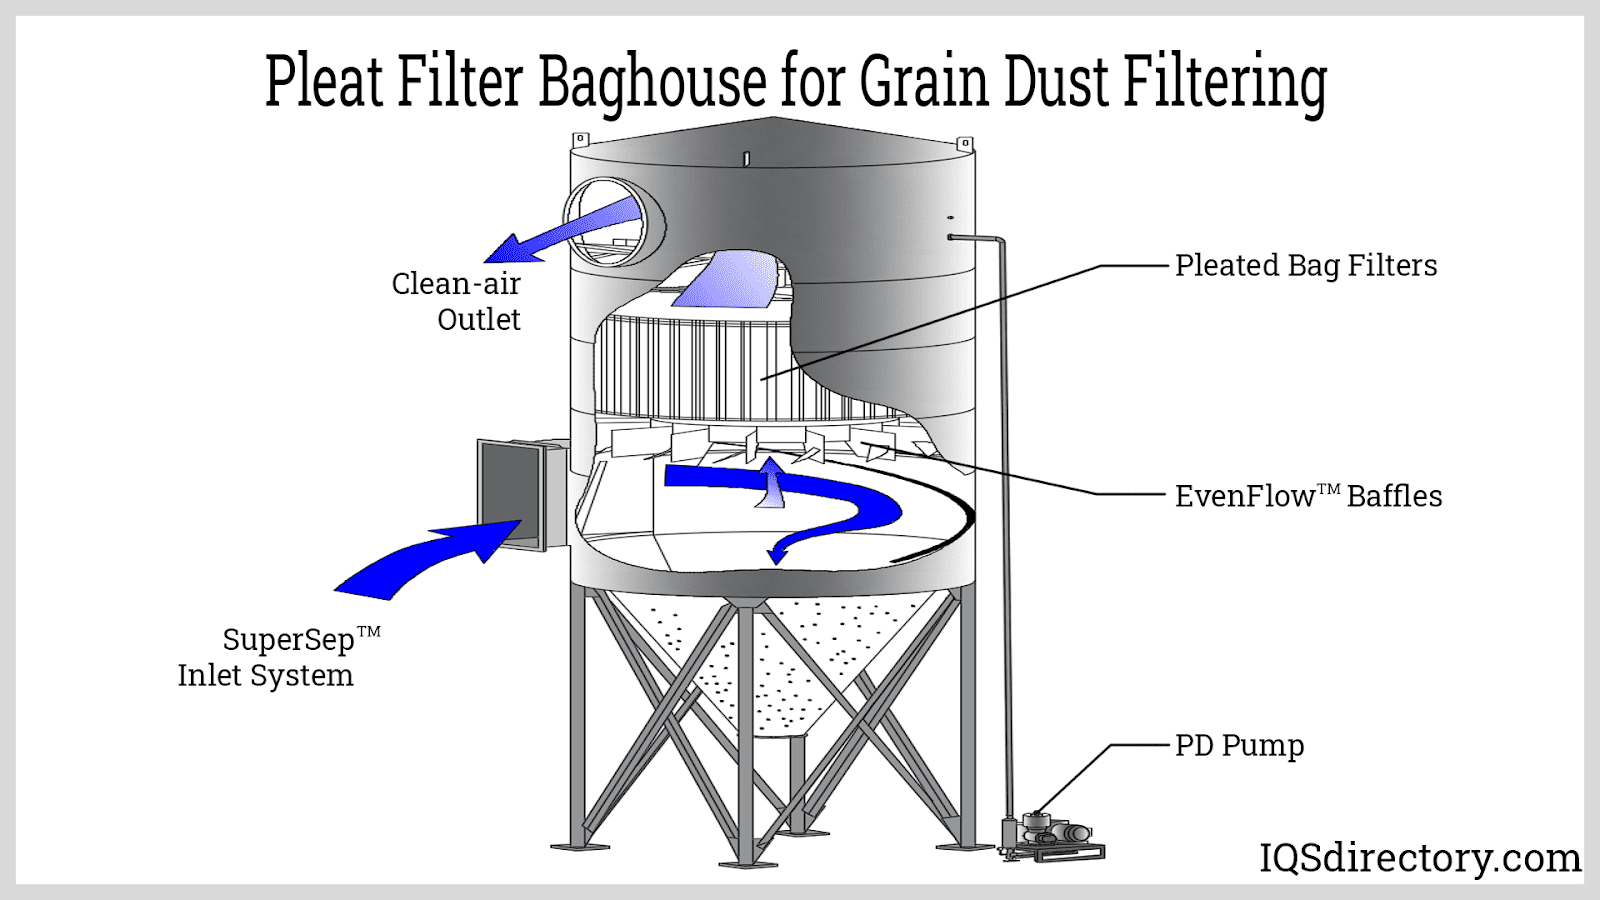 Pleat Filter Baghouse for Grain Dust Filtering